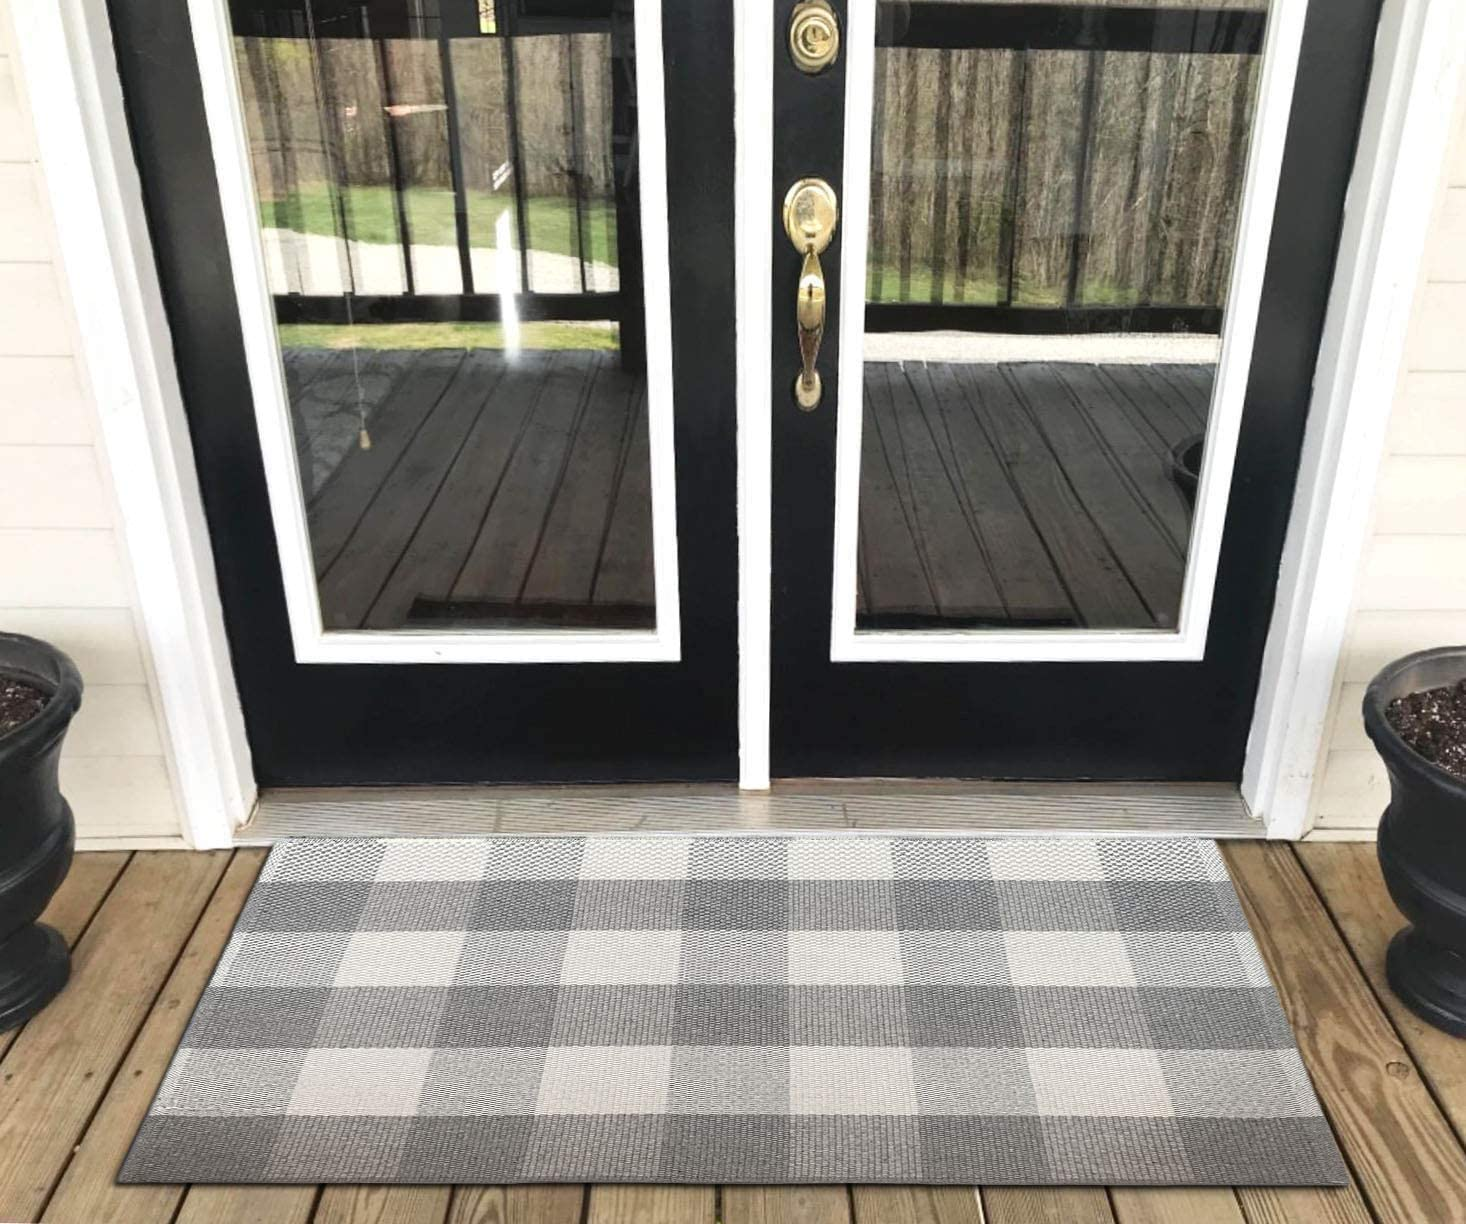 Levinis Door Mat – Cotton Rugs Grey and White Checkered Plaid Rug for Front Porch Kitchen Bathroom Entry Way 27.5 x 43